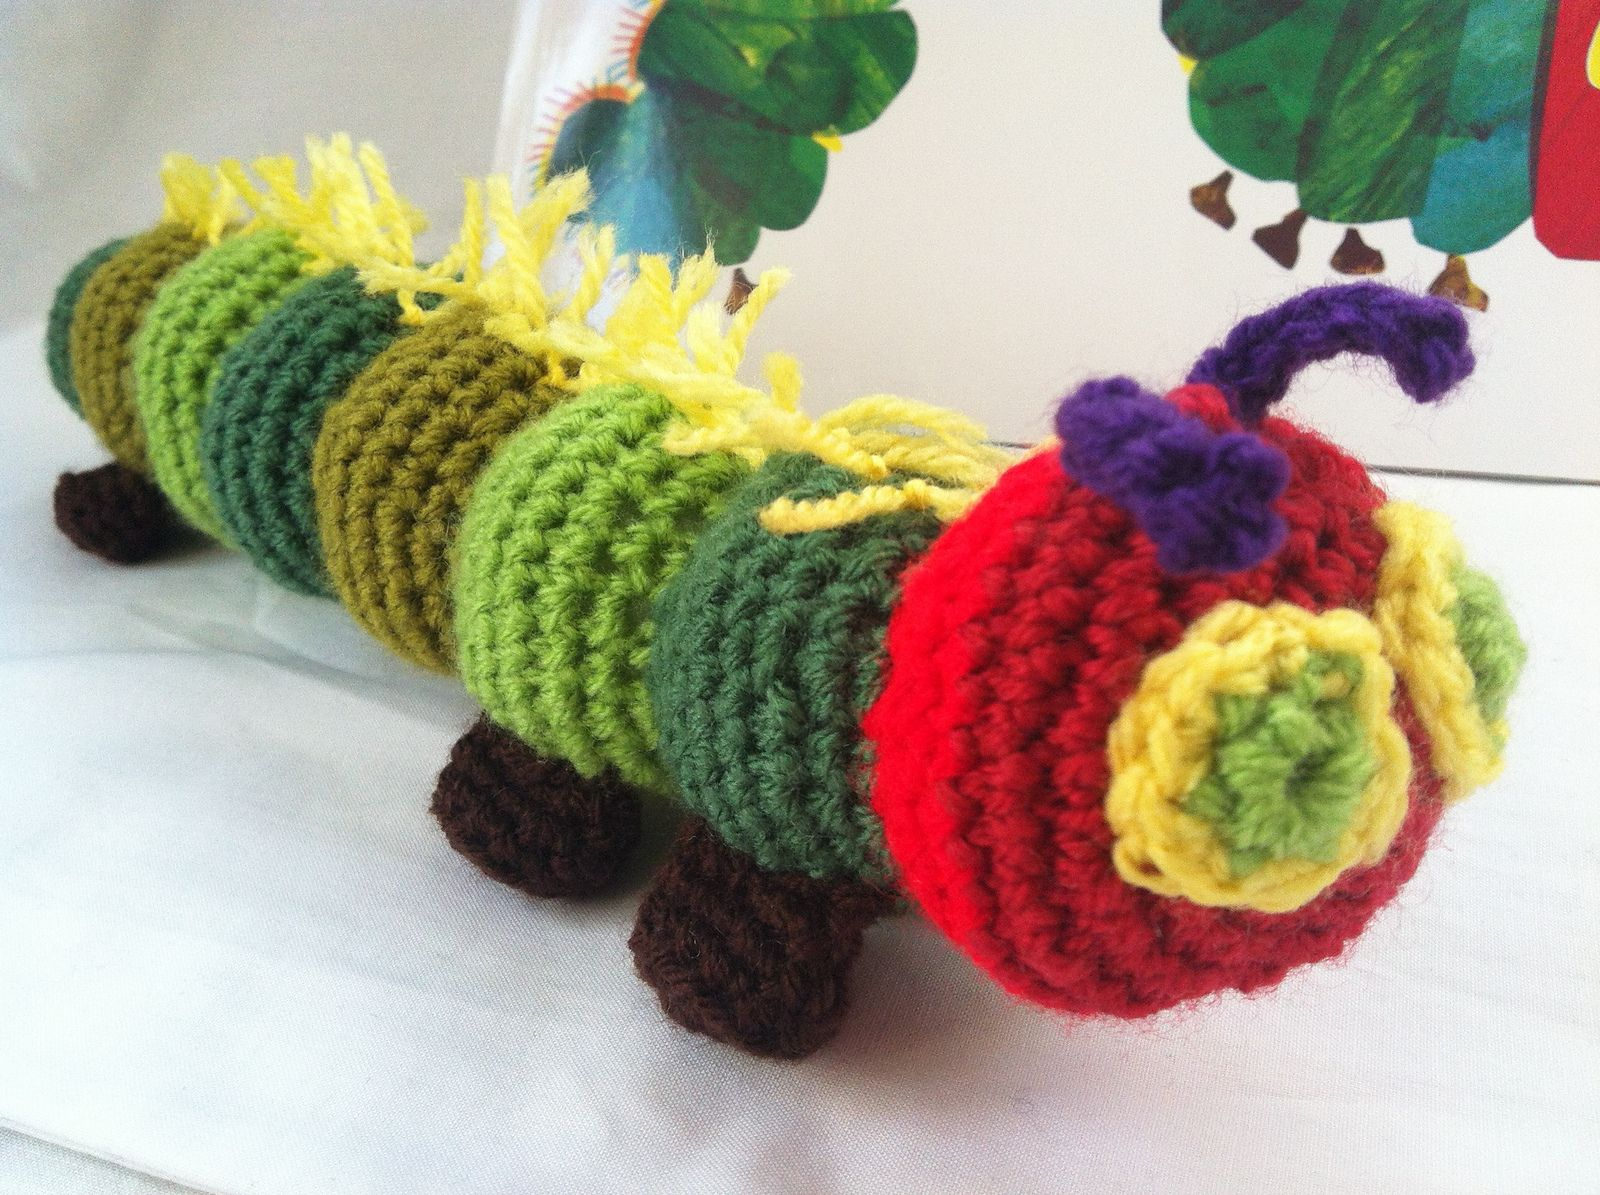 Ravelry: Very Hungry Caterpillar by Gillian Dite | crochet options ...